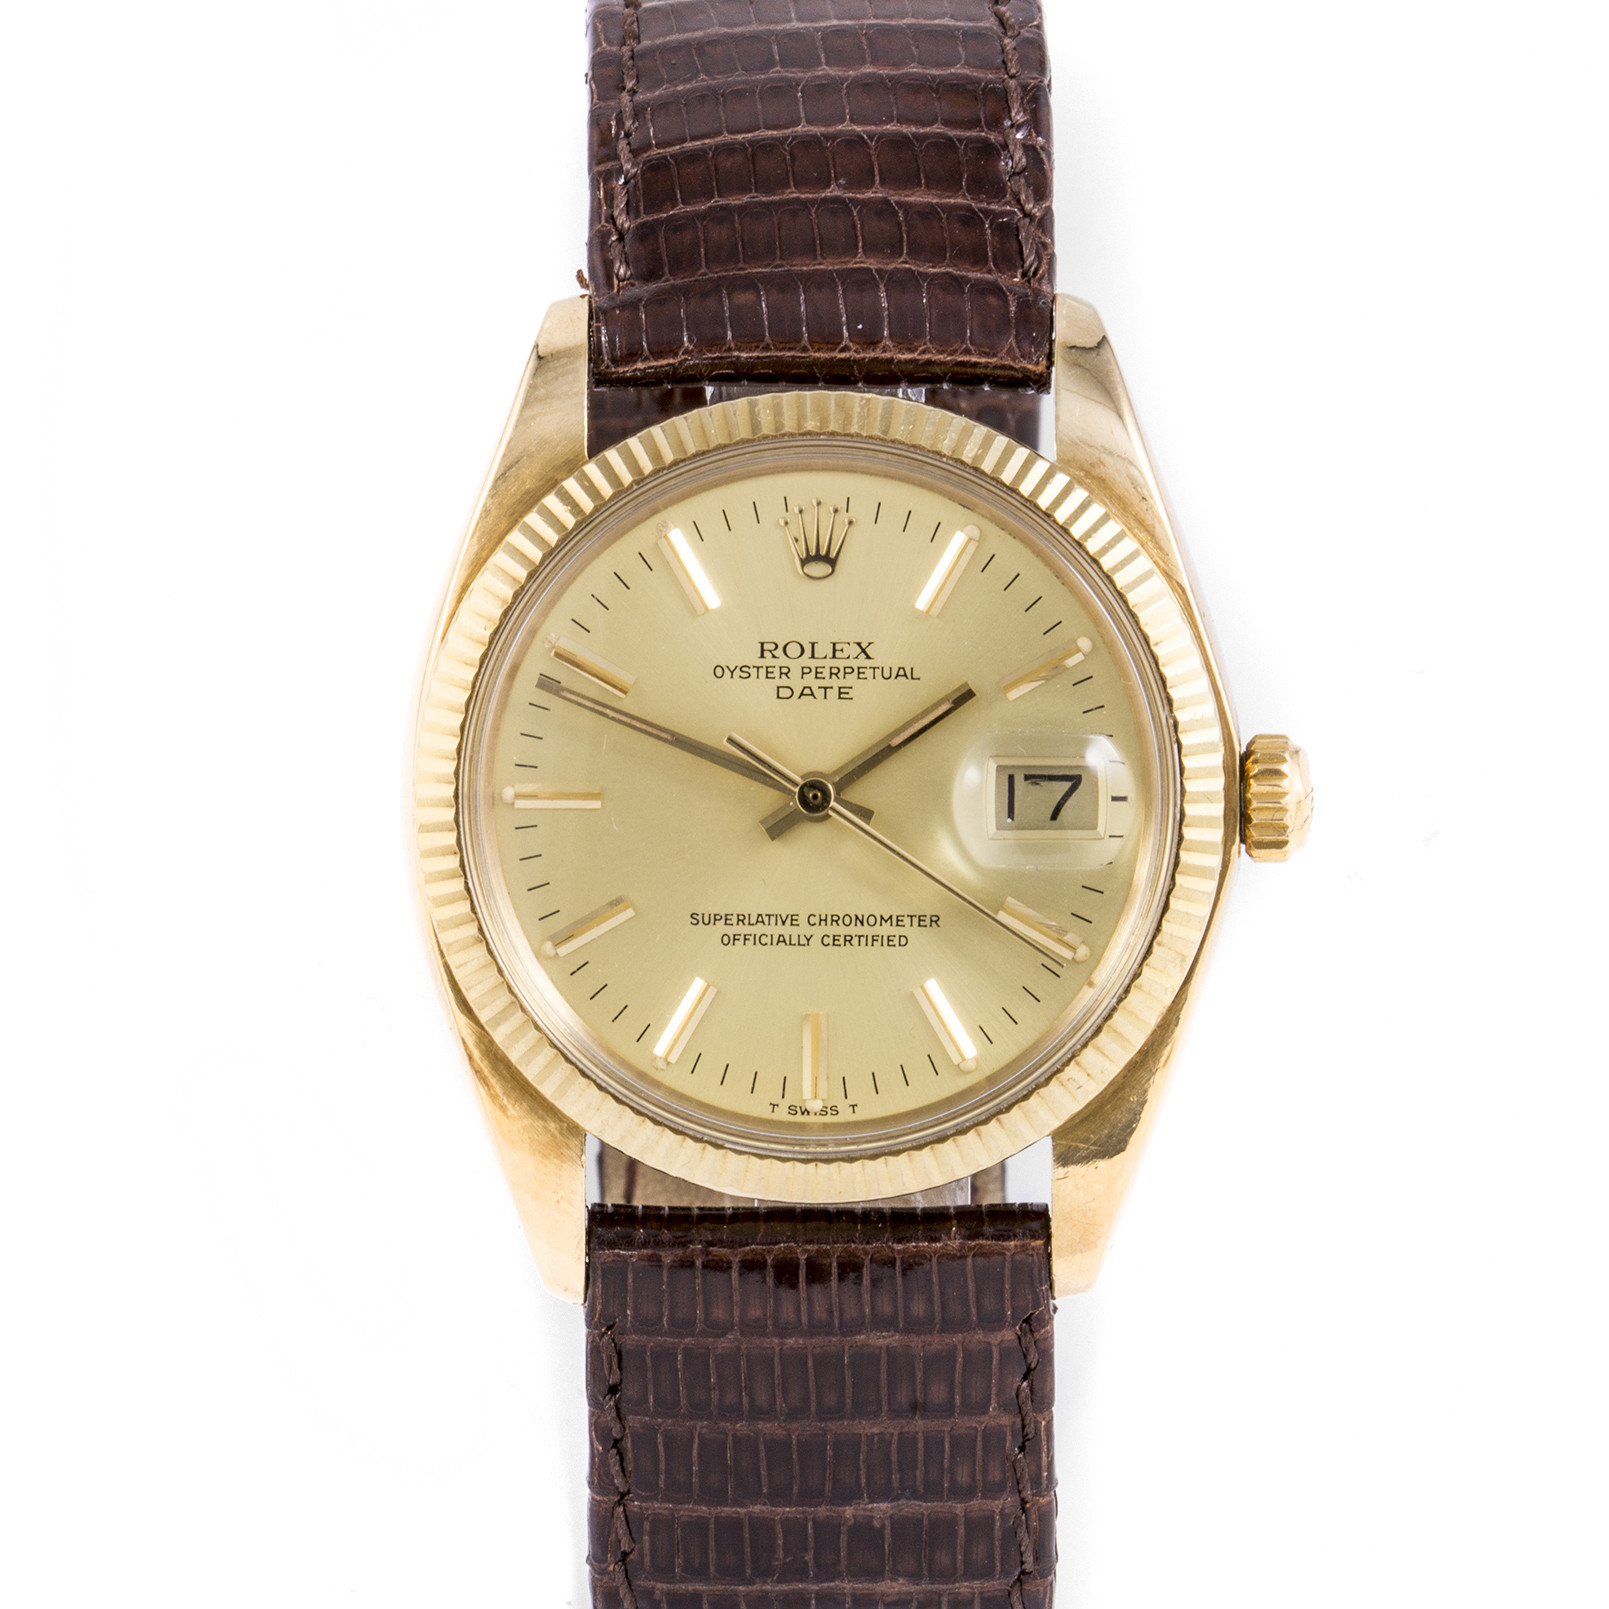 Rolex 1503 Mens Oyster Perpetual Date 34mm Yellow Gold w/ Champagne Stick Dial and Fluted Bezel with Brown Leather Strap - Pre-Owned